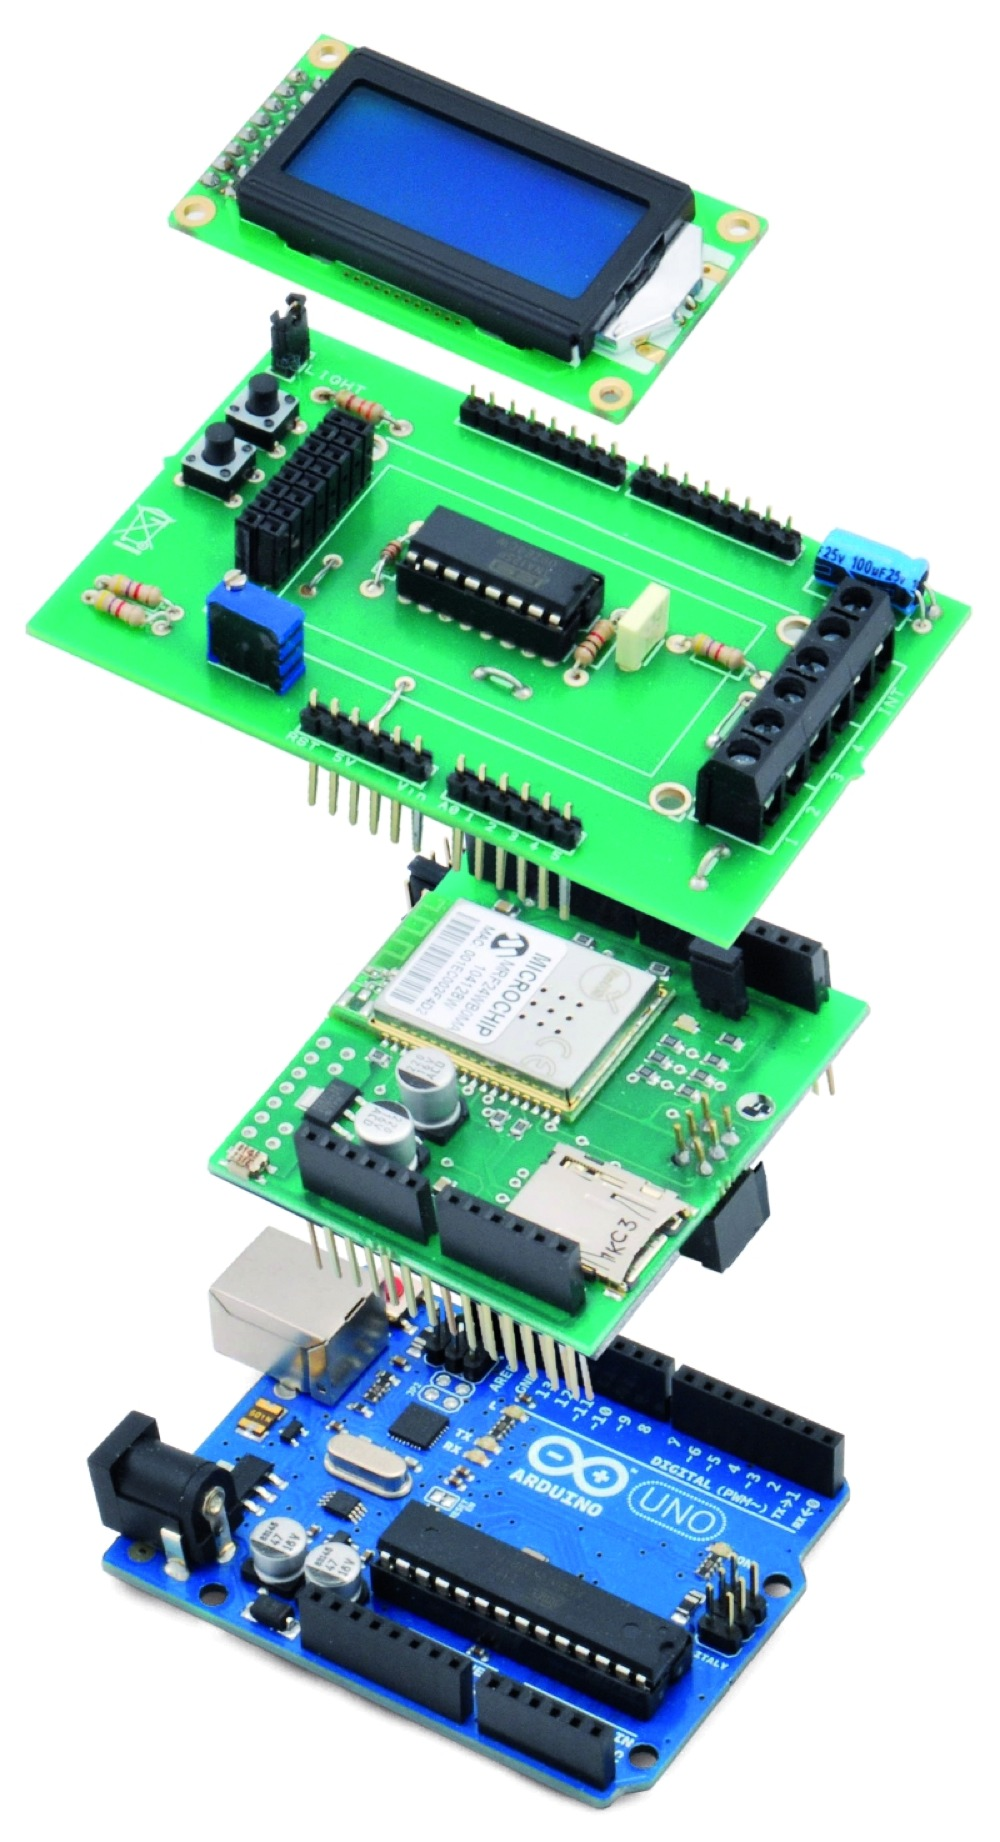 Program an ATMega328P and use it without Arduino board